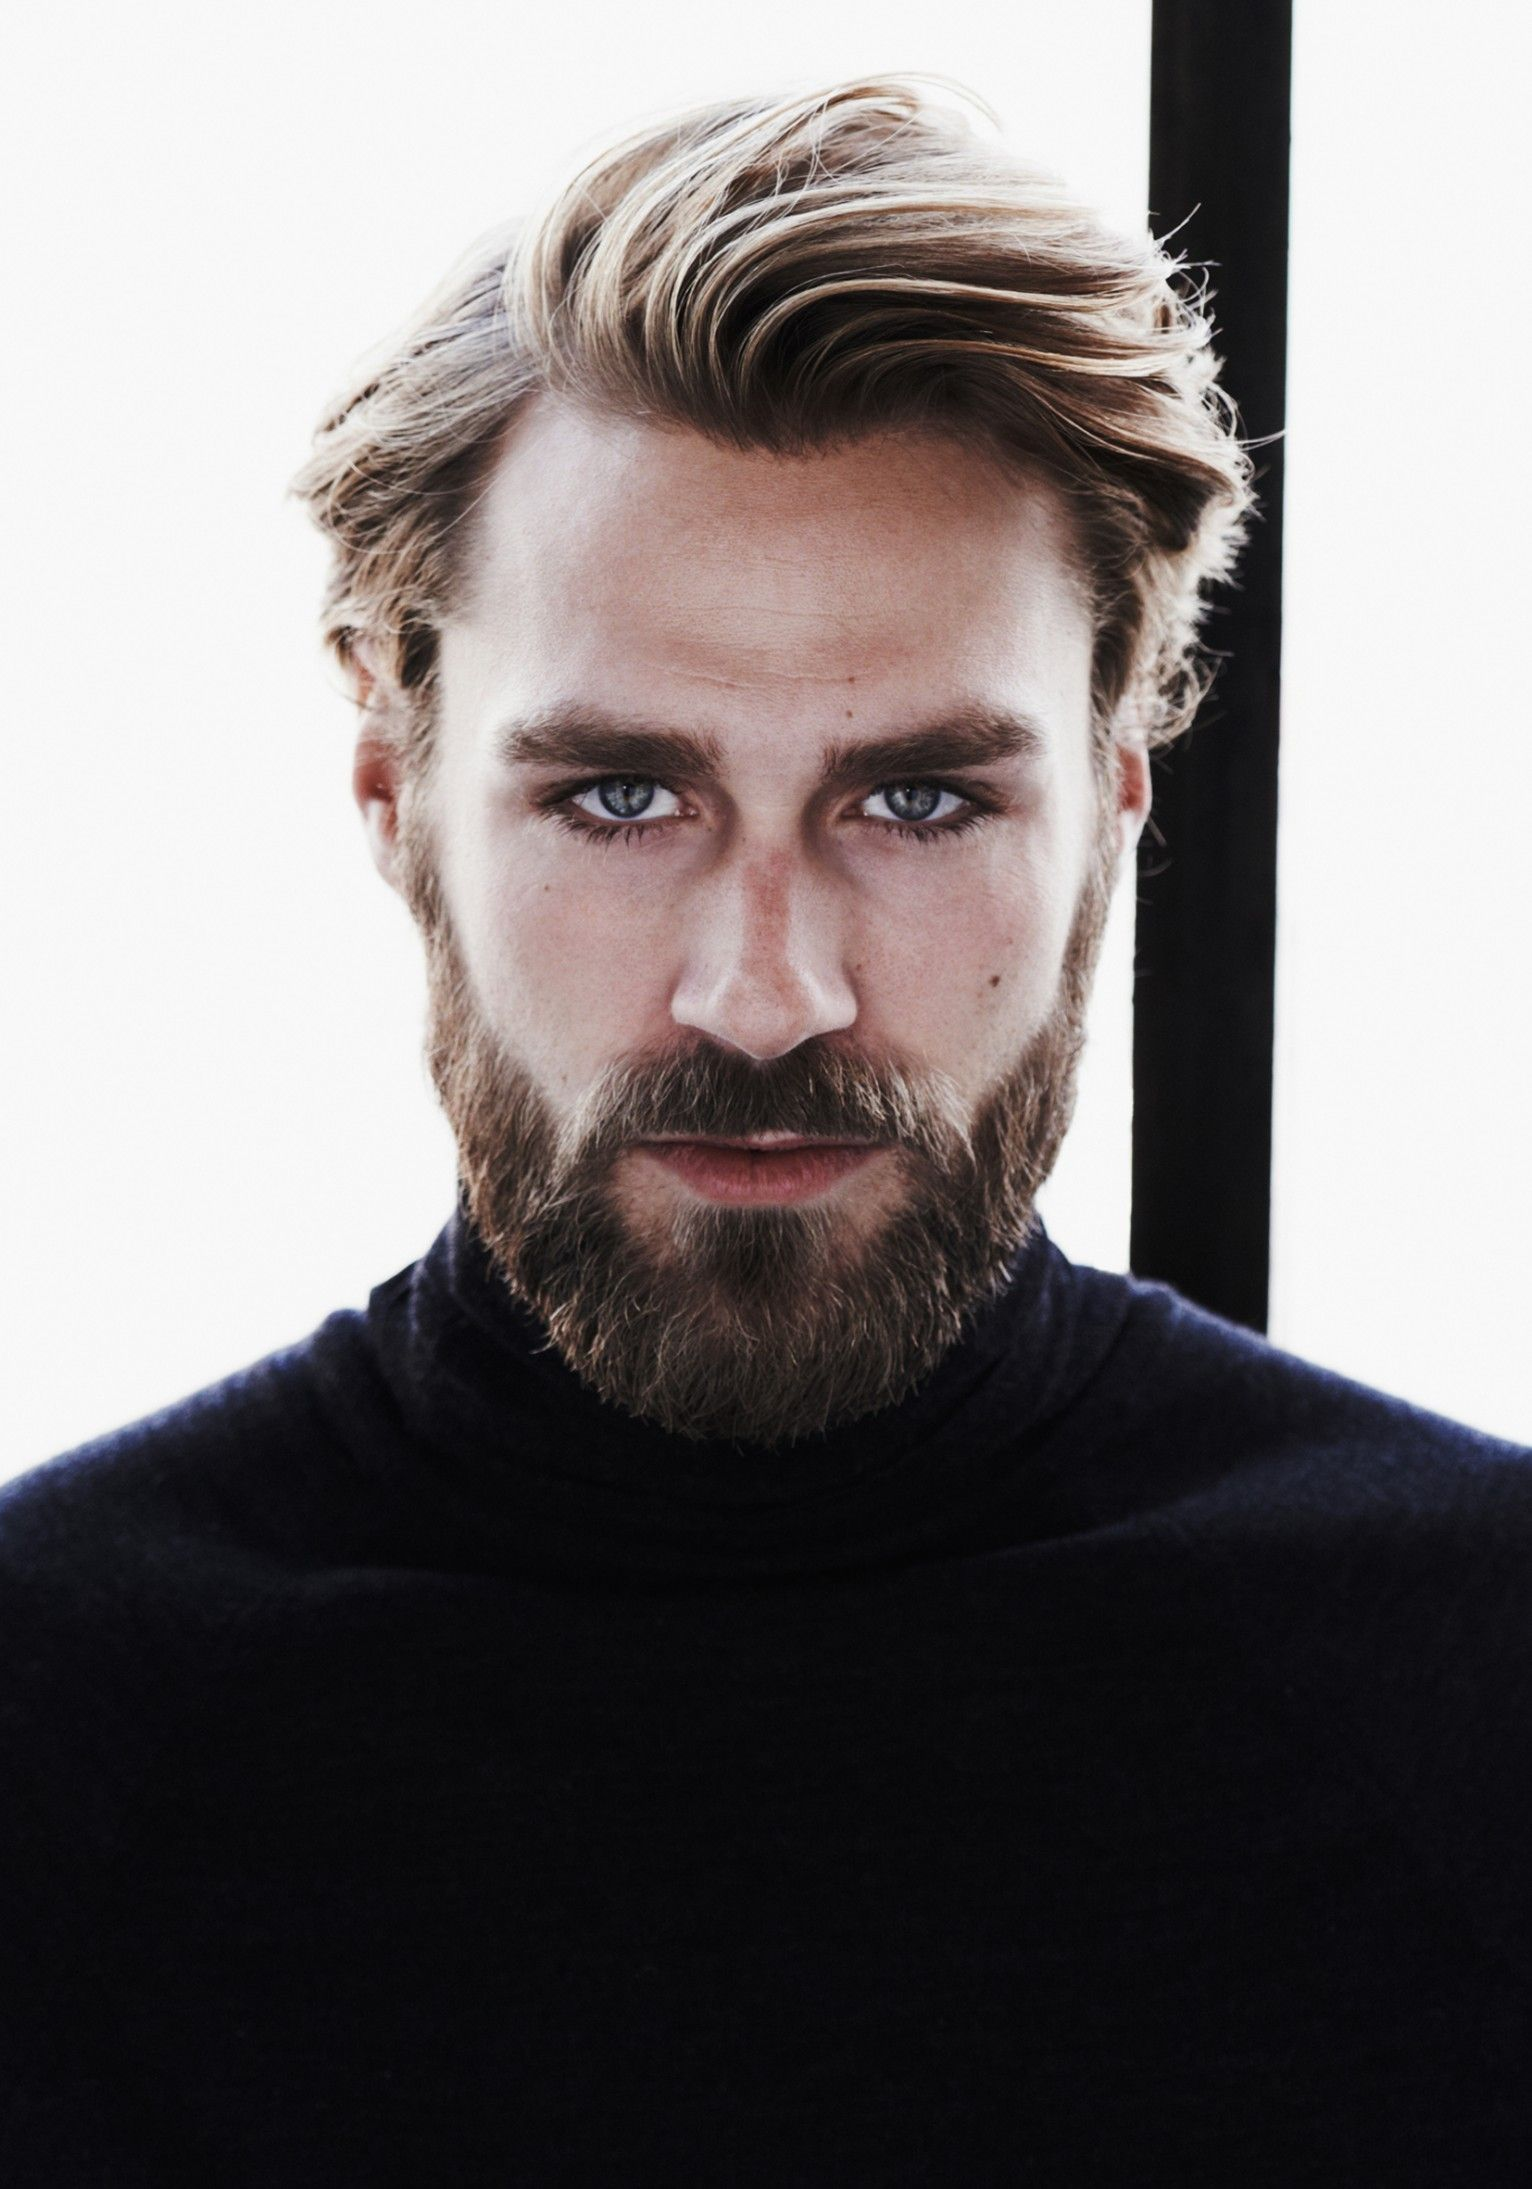 Oz Stylist To The People Blonde Beard Beard Hairstyle Handsome Bearded Men